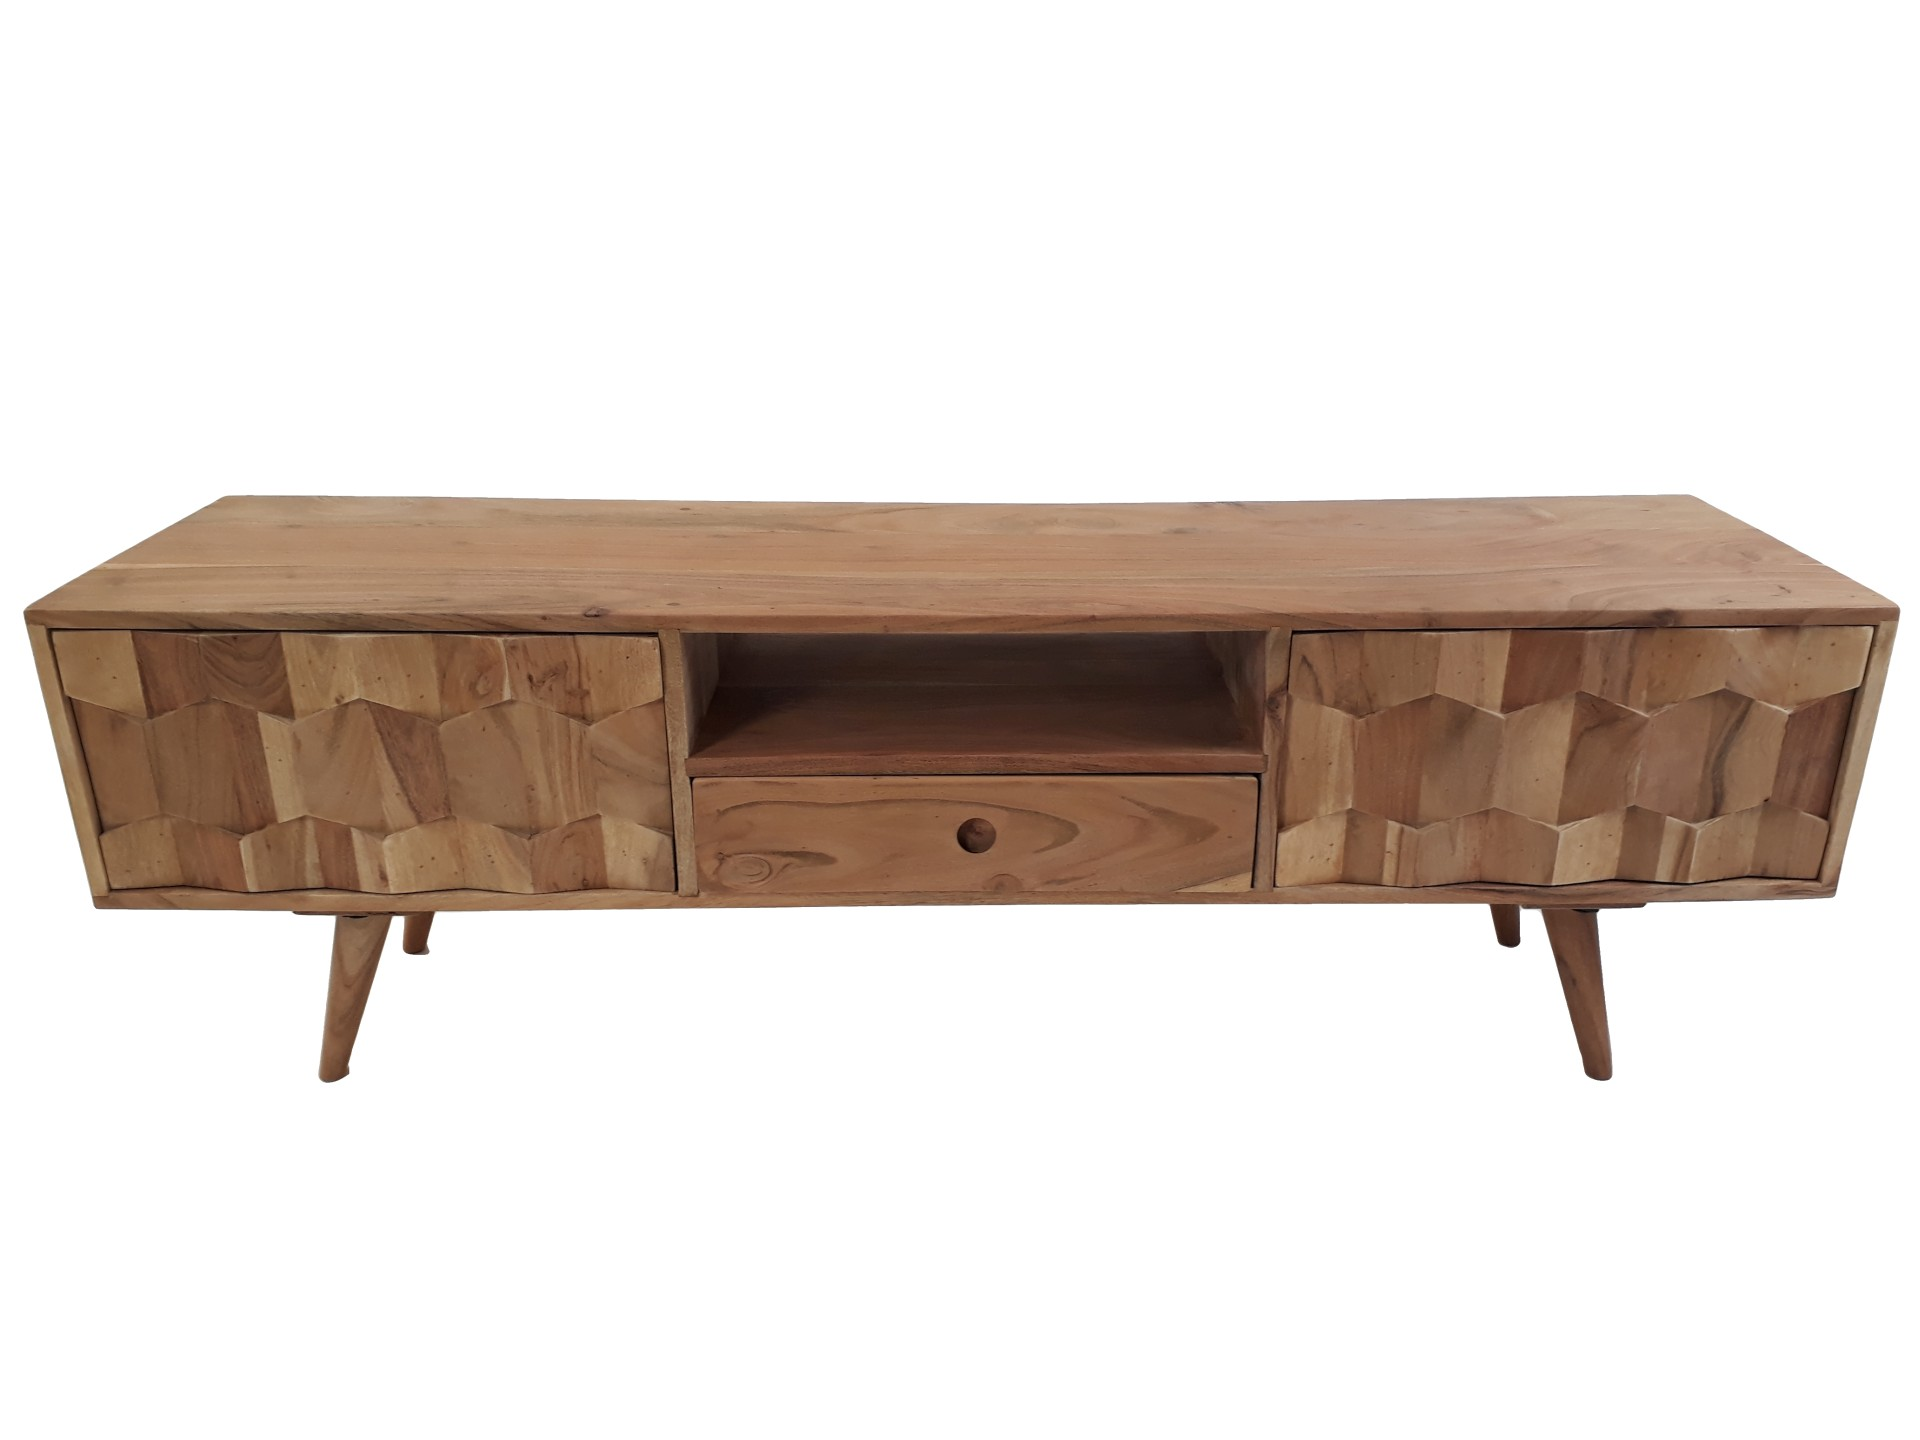 Design Kommode Pinario Aus Akazie Massivholz Tv Board Sideboard Massivholz Retro Design Honeycomb